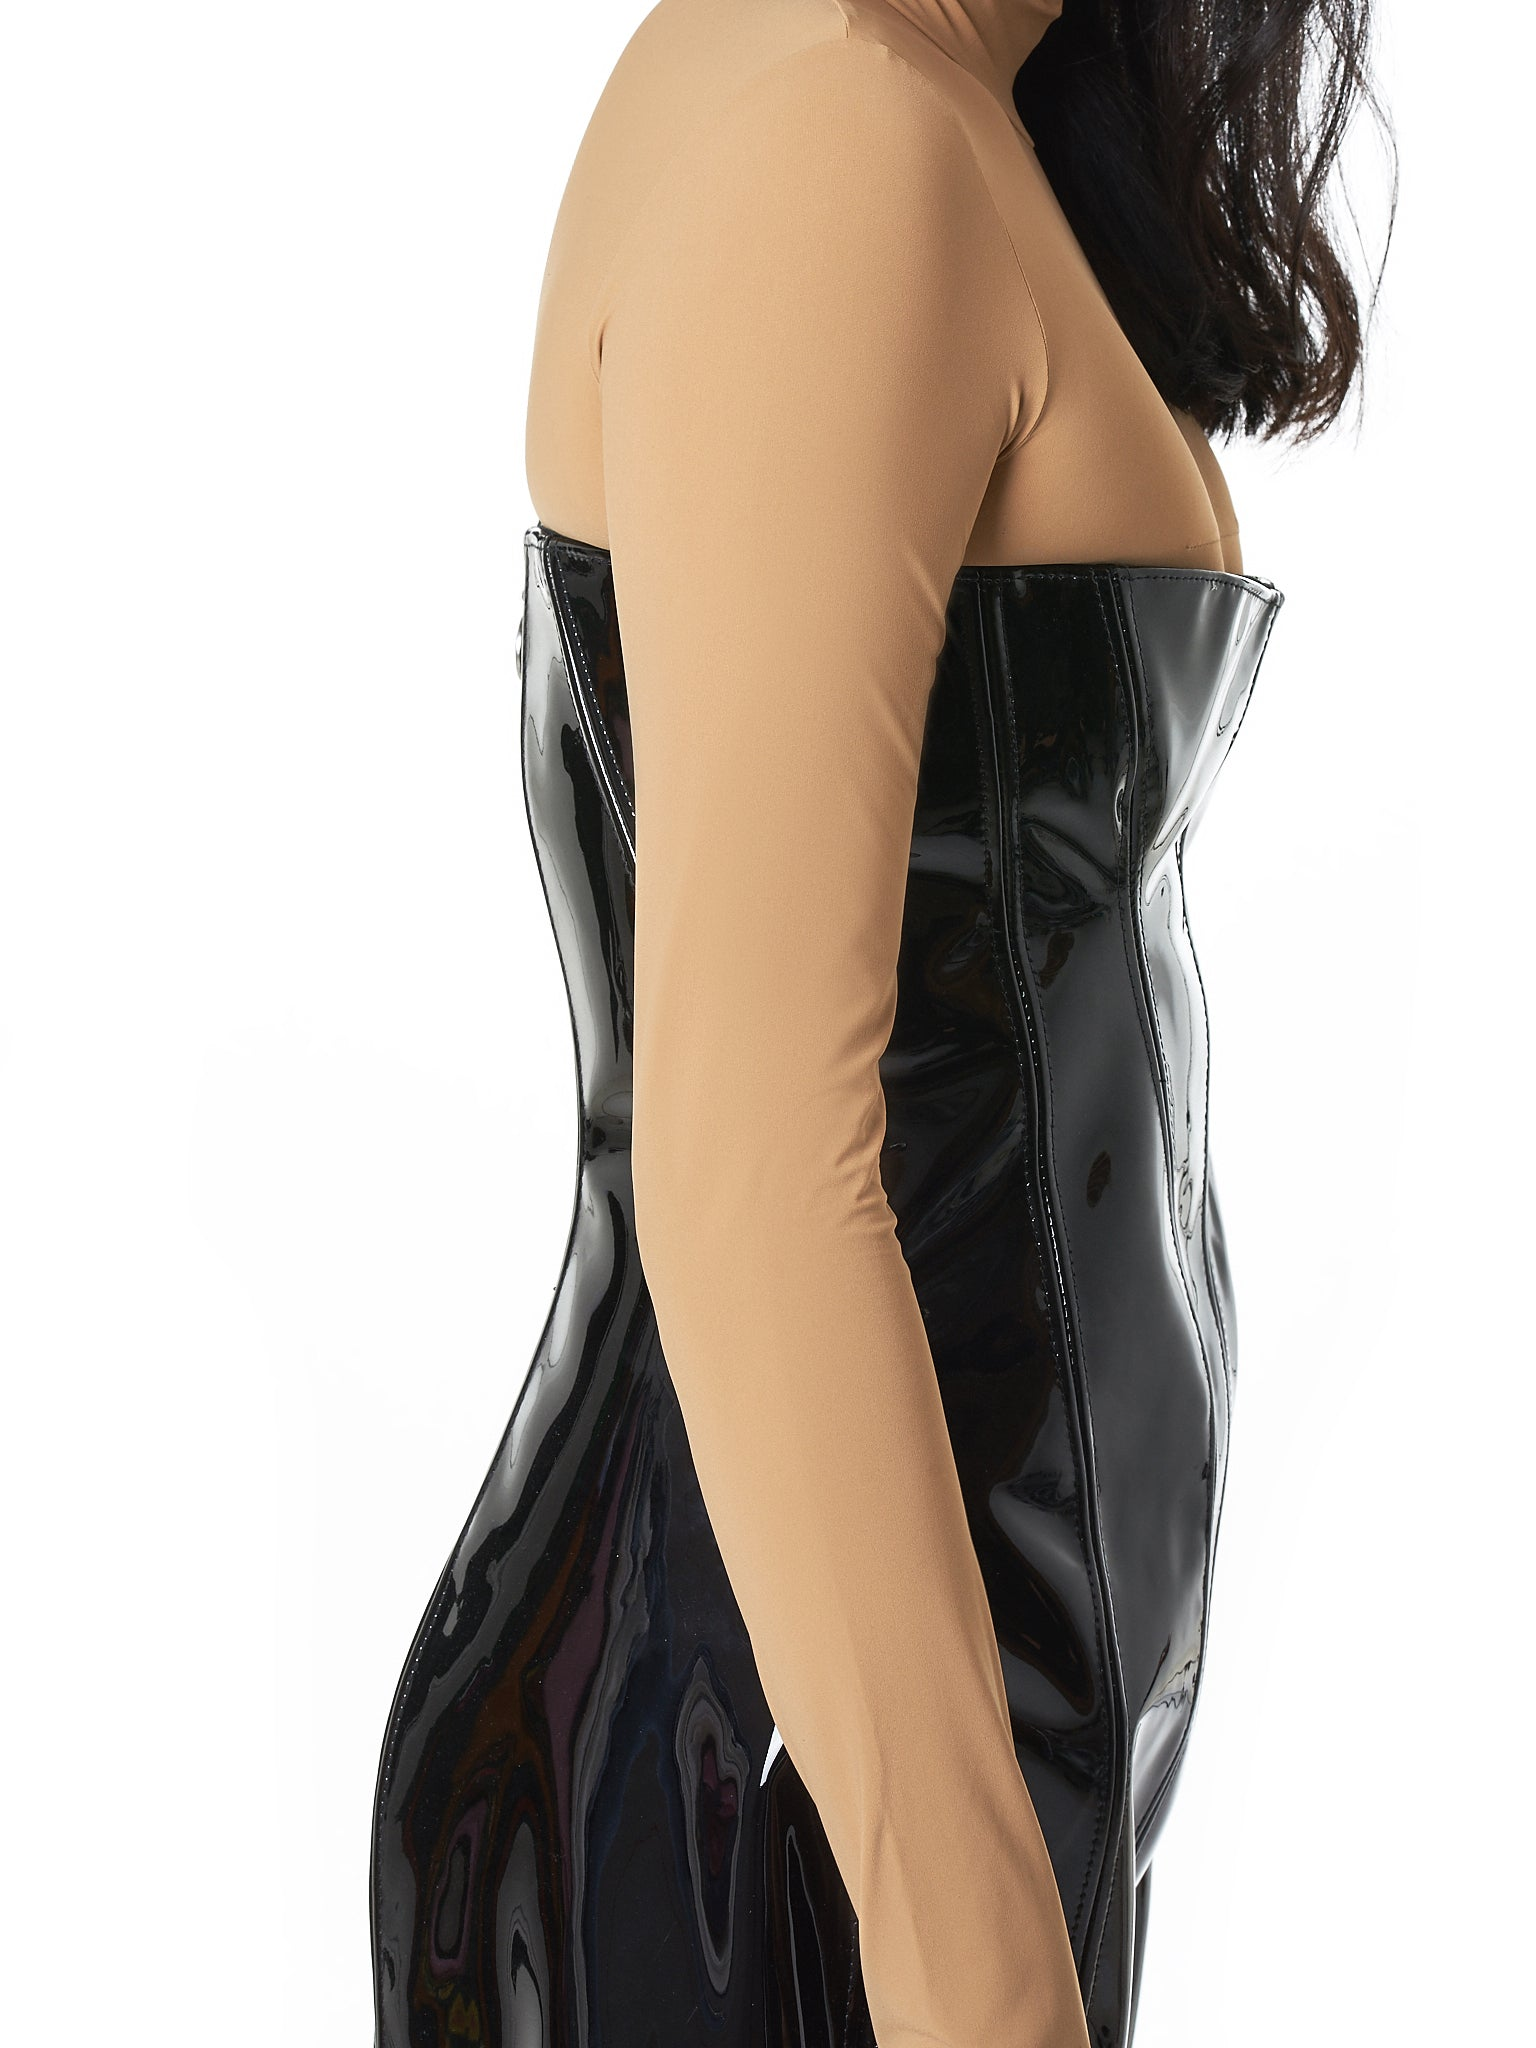 Art School Leather Dress - Hlorenzo detail 1